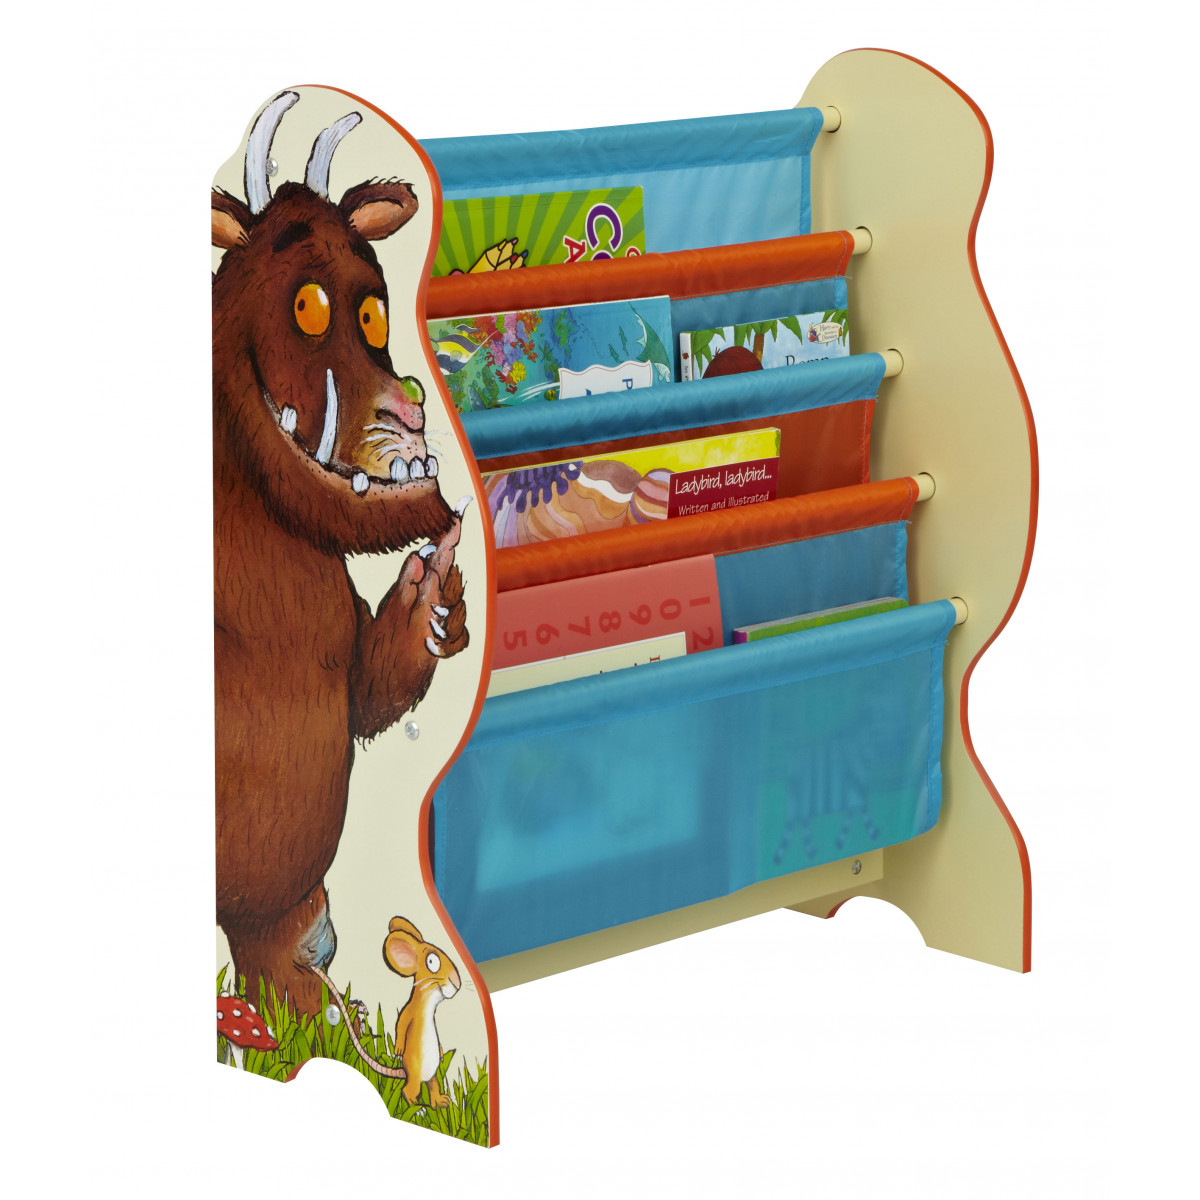 Scooby Doo Bedroom Accessories The Gruffalo Kids Bedding Room Decor Price Right Home